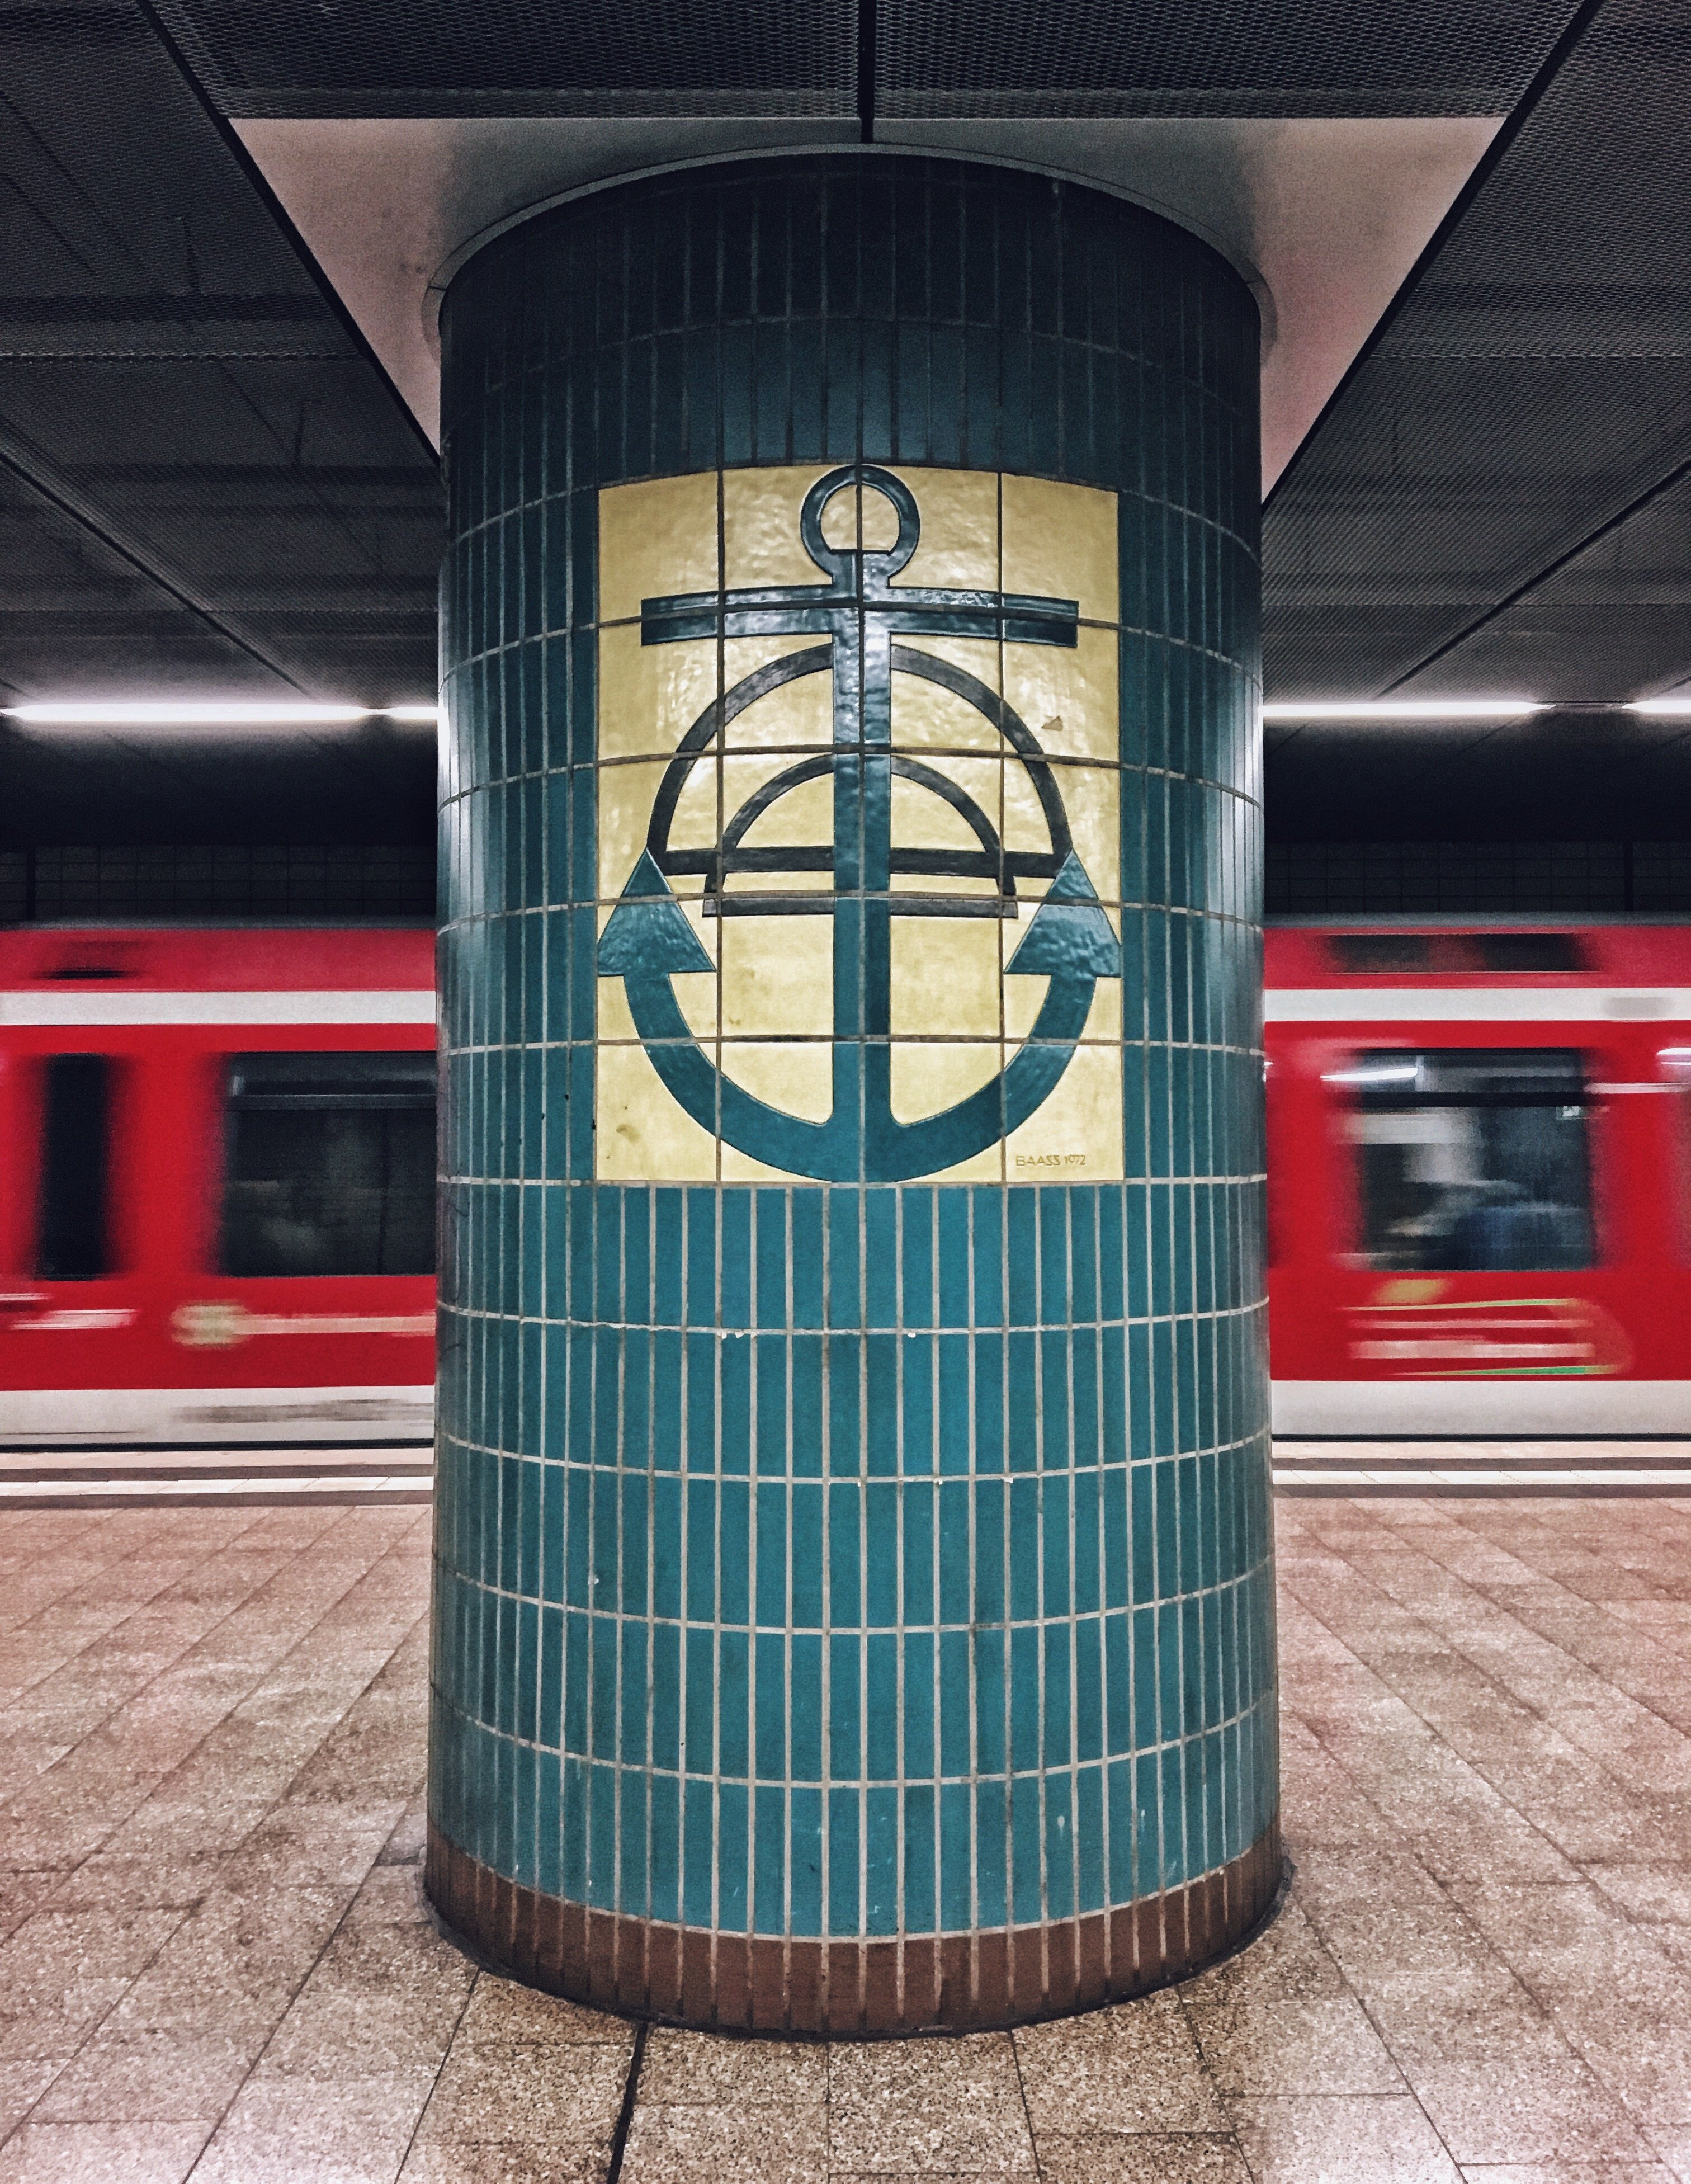 S-bahn Plan Von Hamburg Underground Stations In Hamburg Design From The Underworld